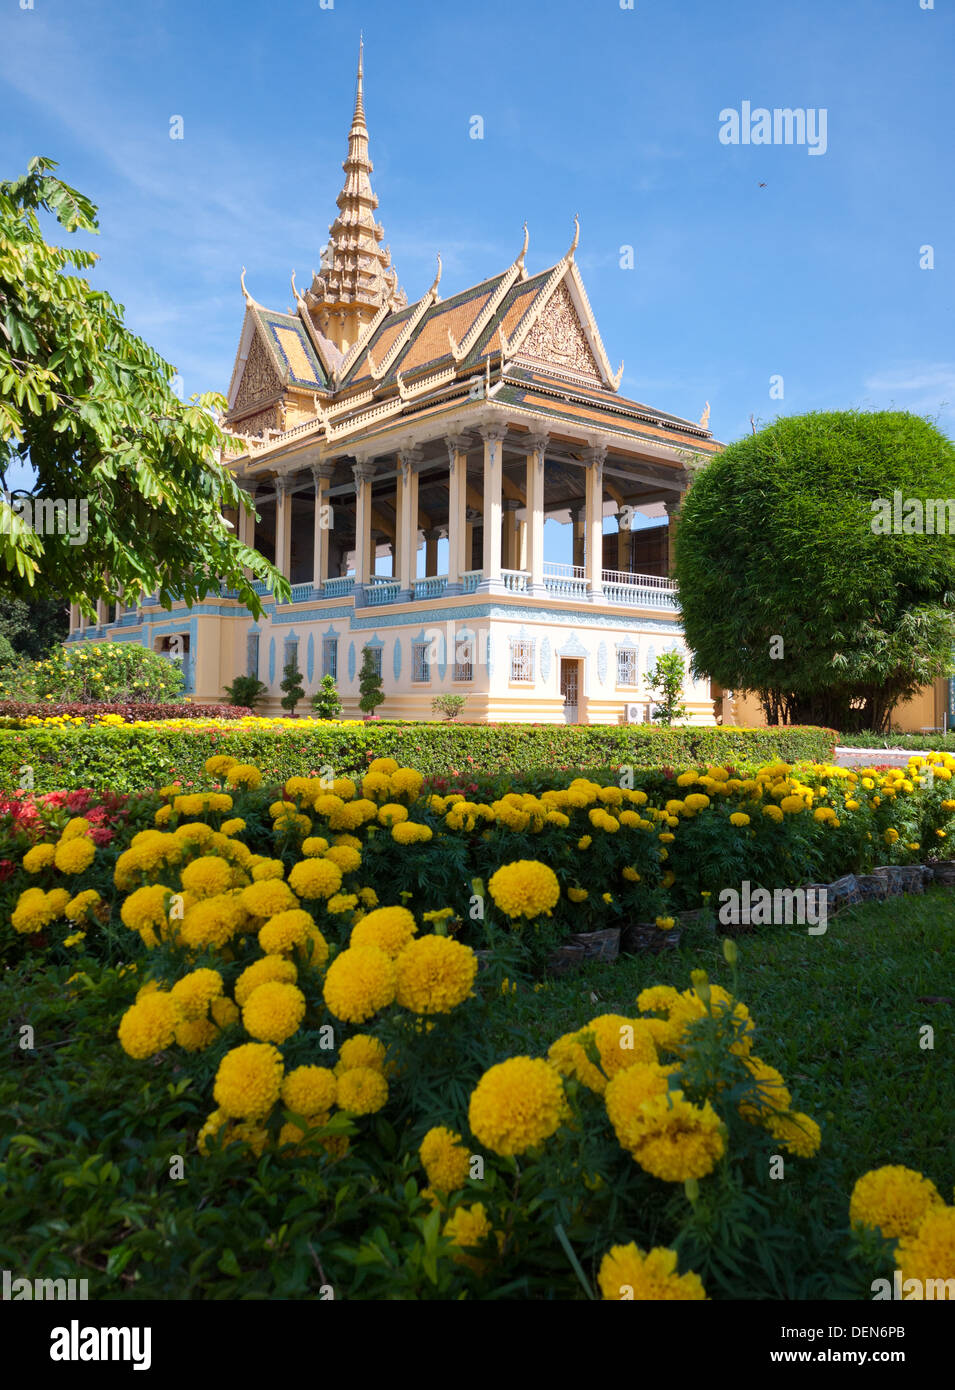 The lovely Moonlight Pavilion, with yellow flowers in the foreground, on the grounds of the Royal Palace in Phnom Penh, Cambodia - Stock Image